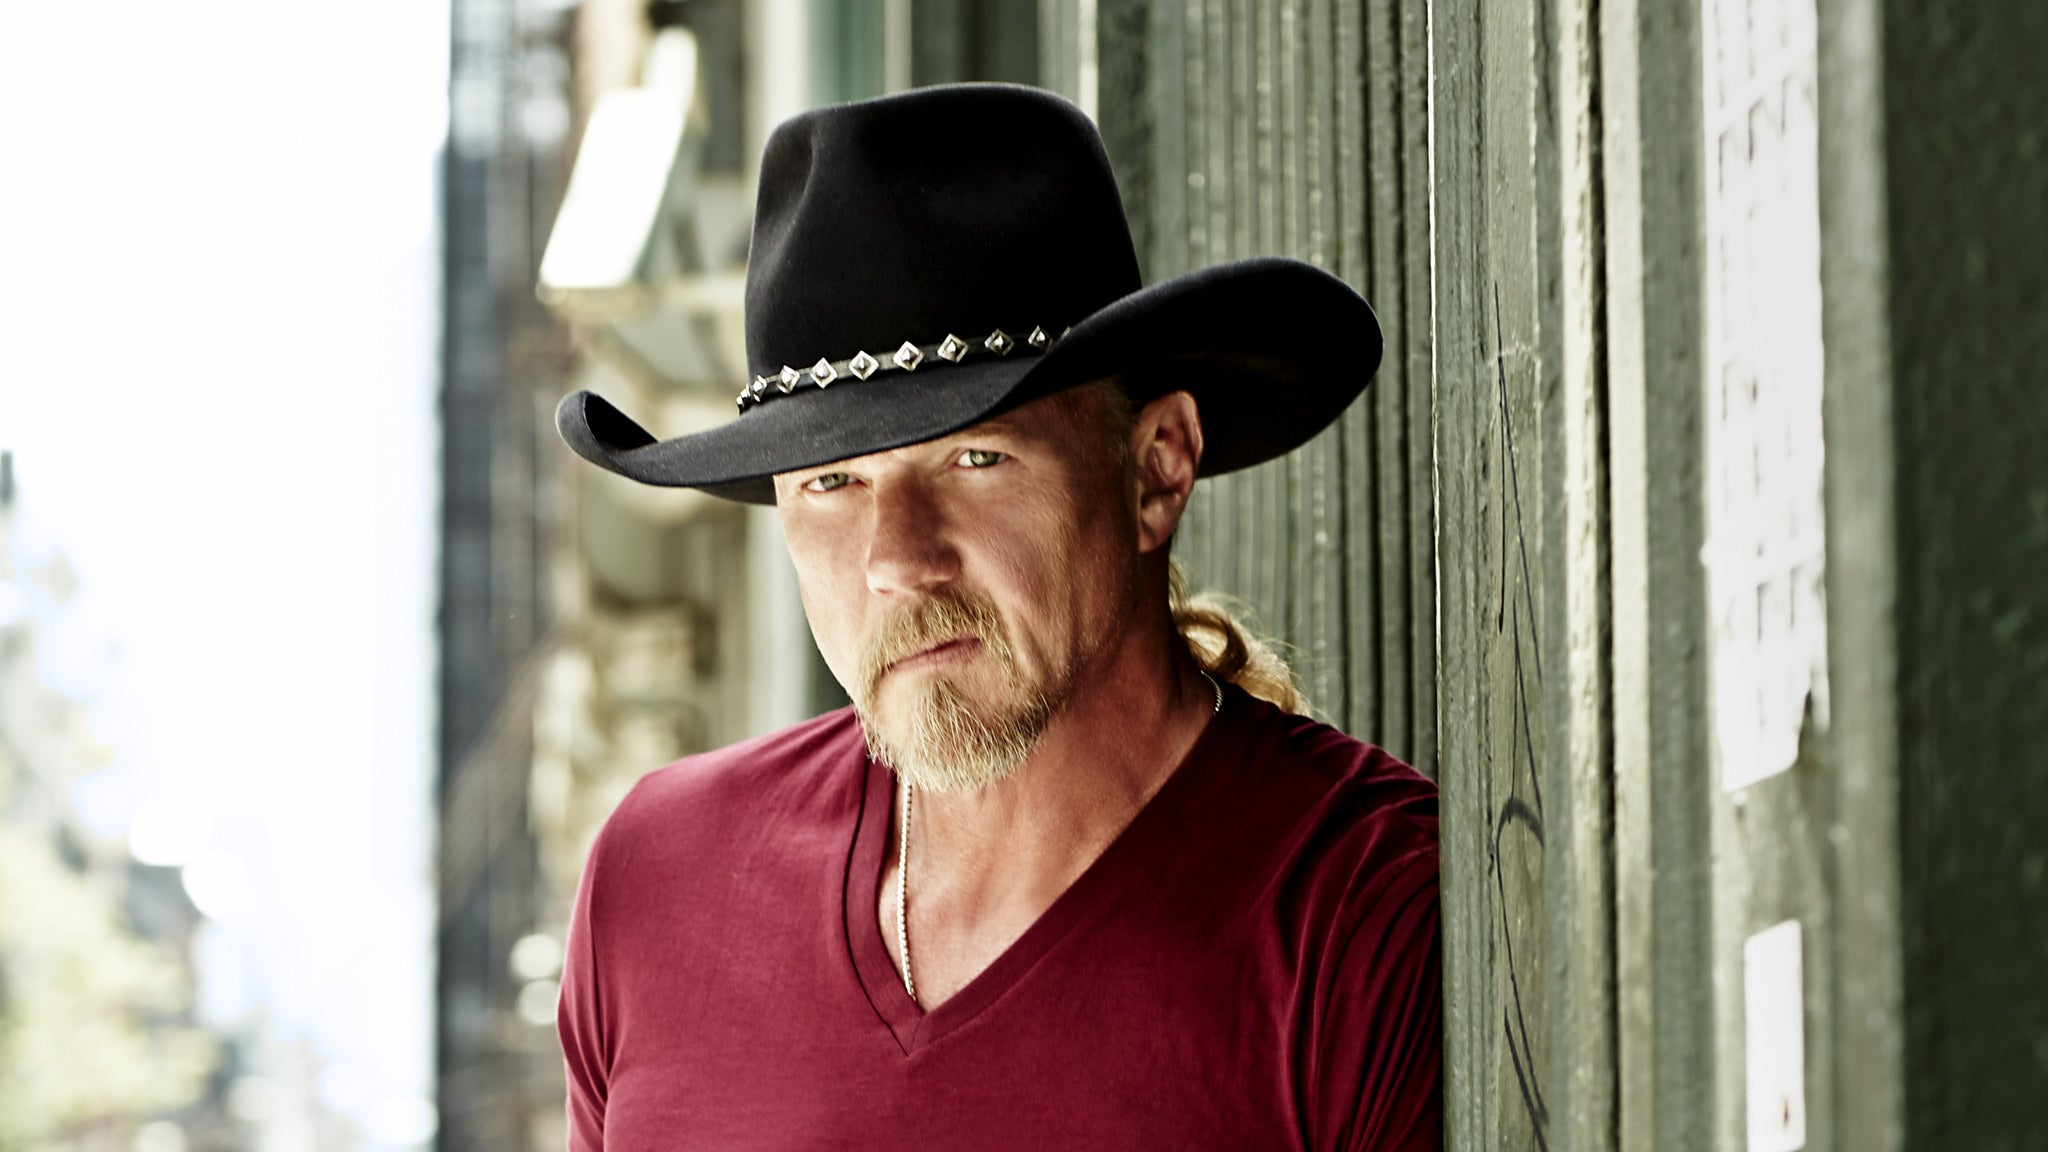 Trace Adkins - The Way I Wanna Go Tour presale password for early tickets in Nashville